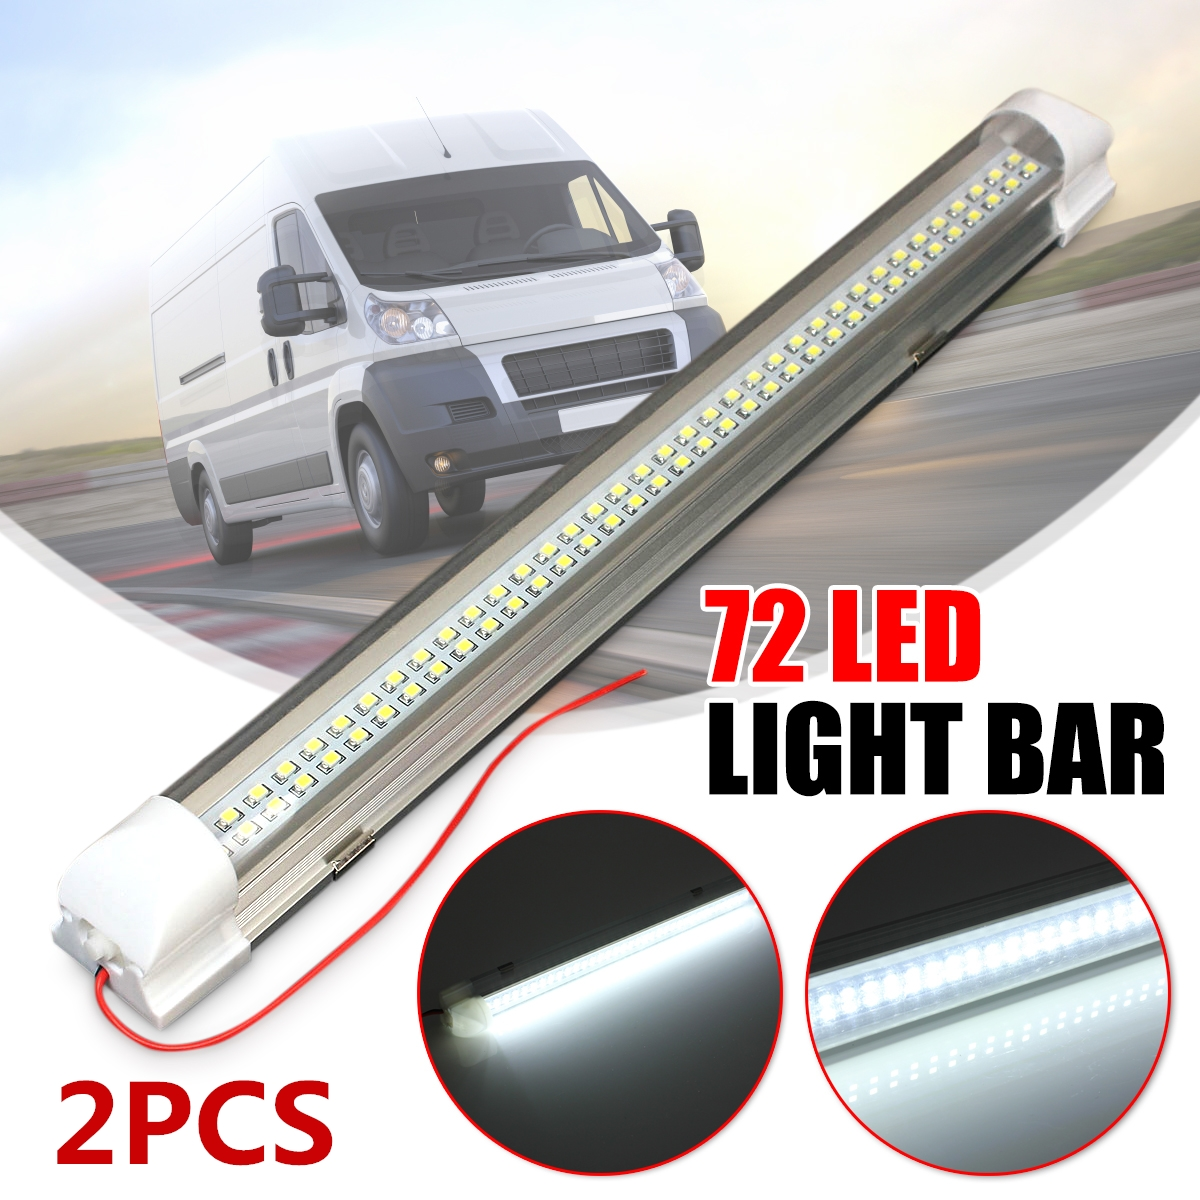 2pcs 12V 72 LED Car Interior White Strip Lights Bar Lamp Van Caravan ON OFF